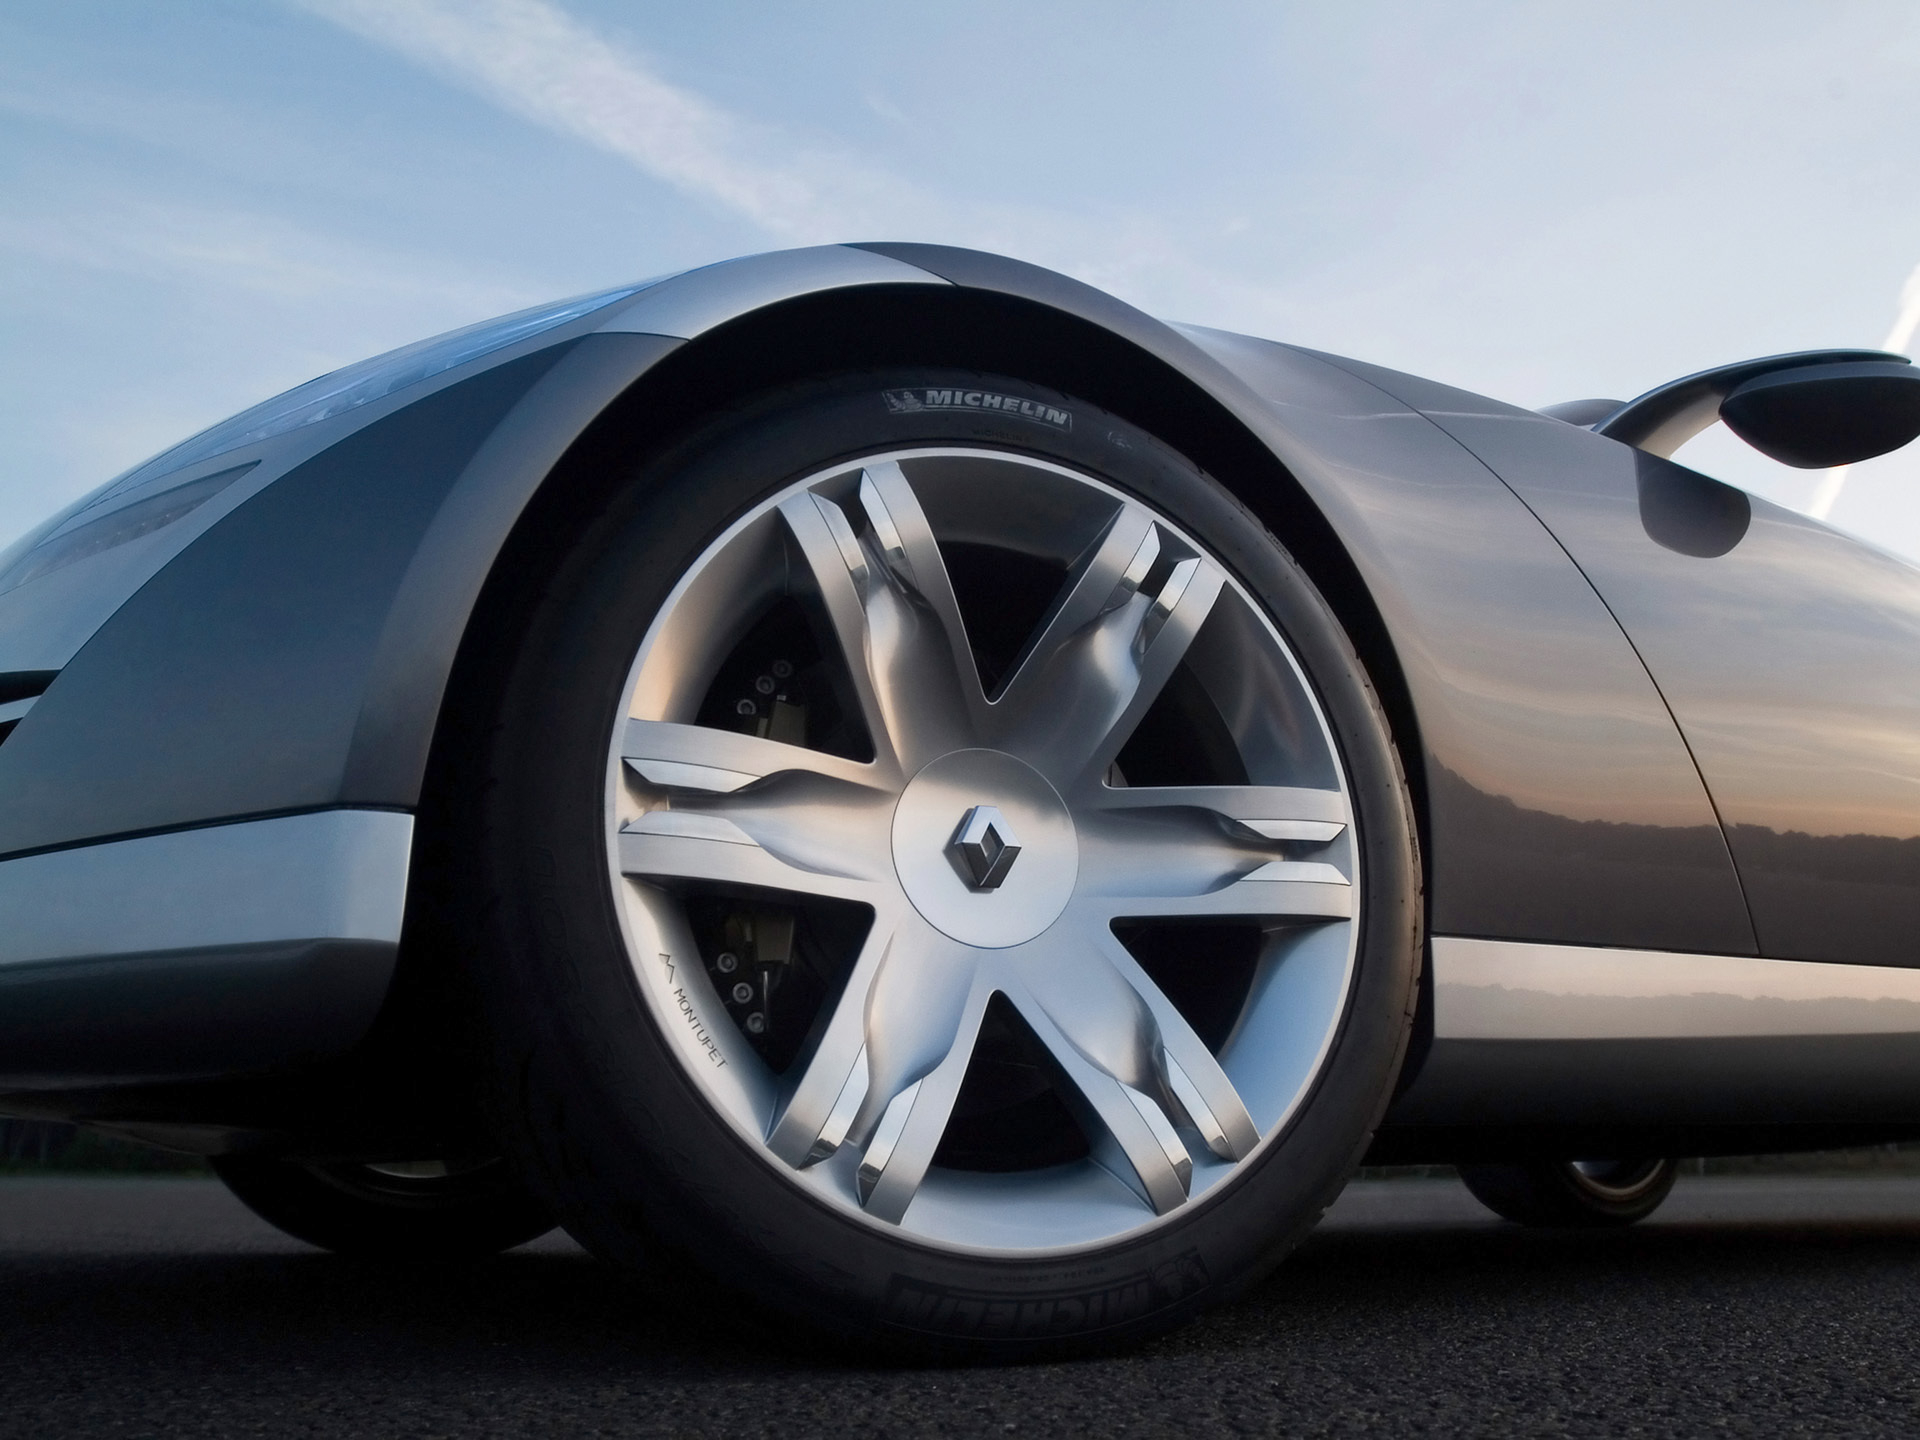 cars wheels Renault low-angle HD Wallpaper